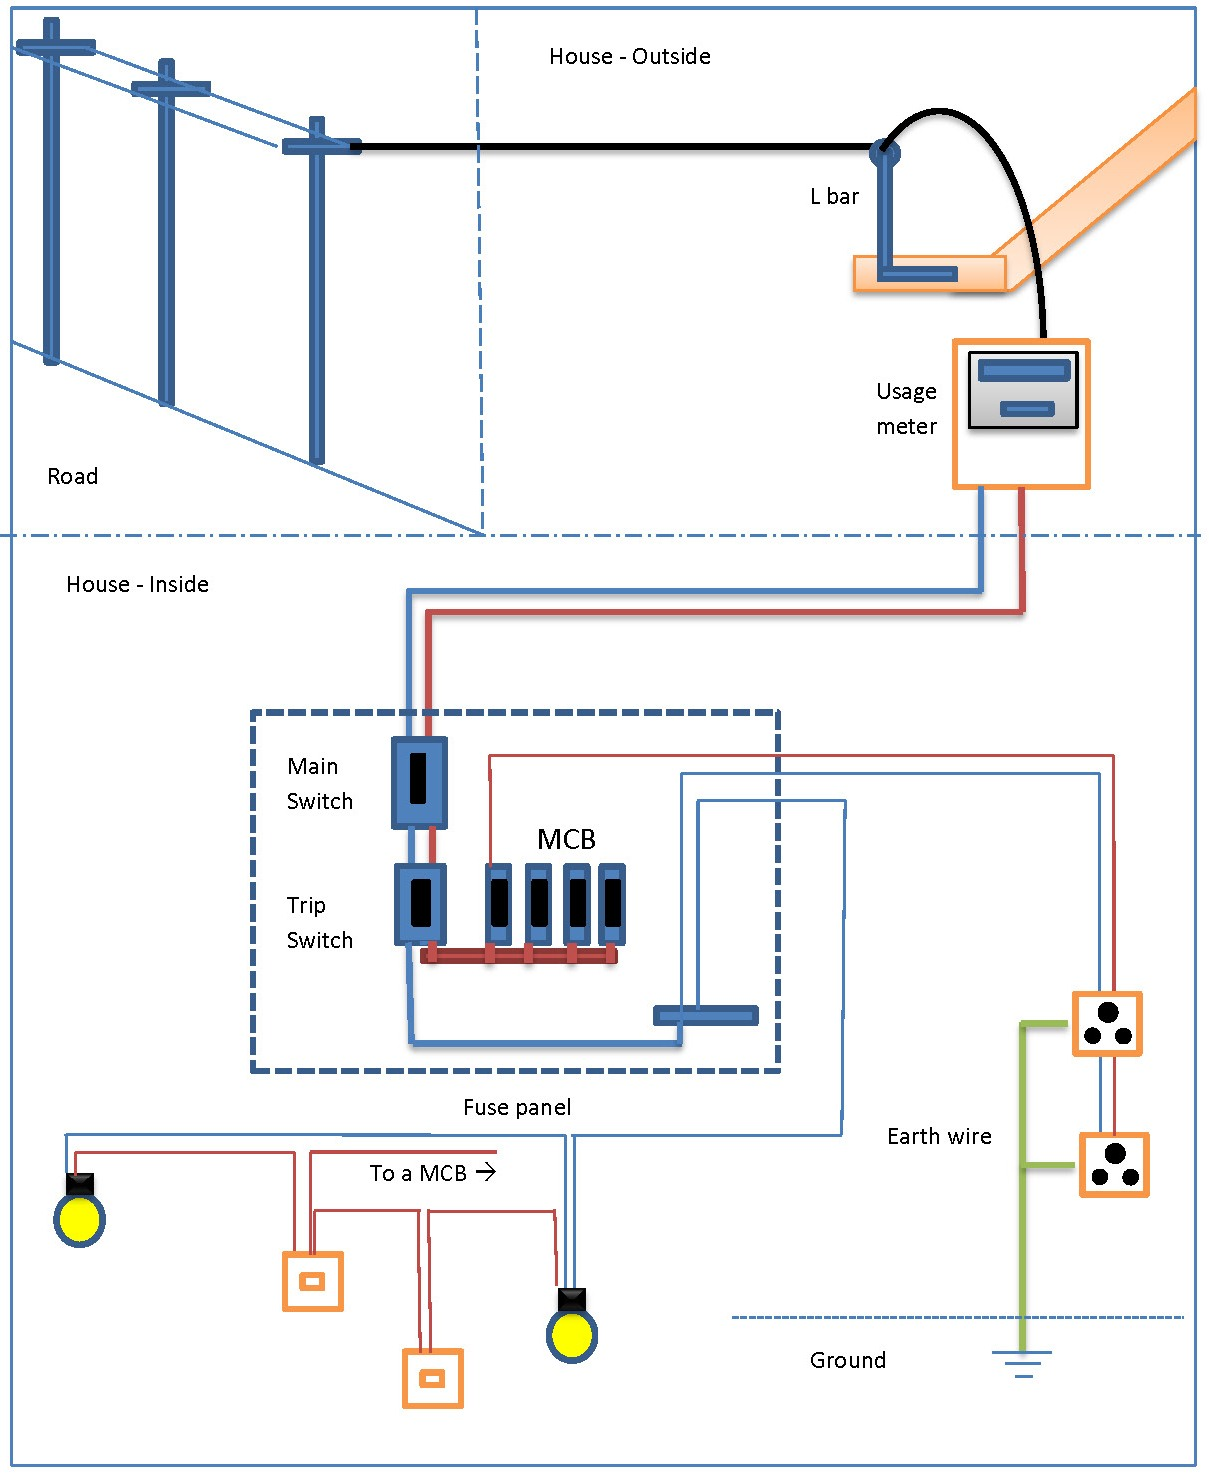 Household Wiring Doorbell Block Diagram Explanation Uk Electrical Diagrams Residential Pdf Get Free Image About House Voltage Home